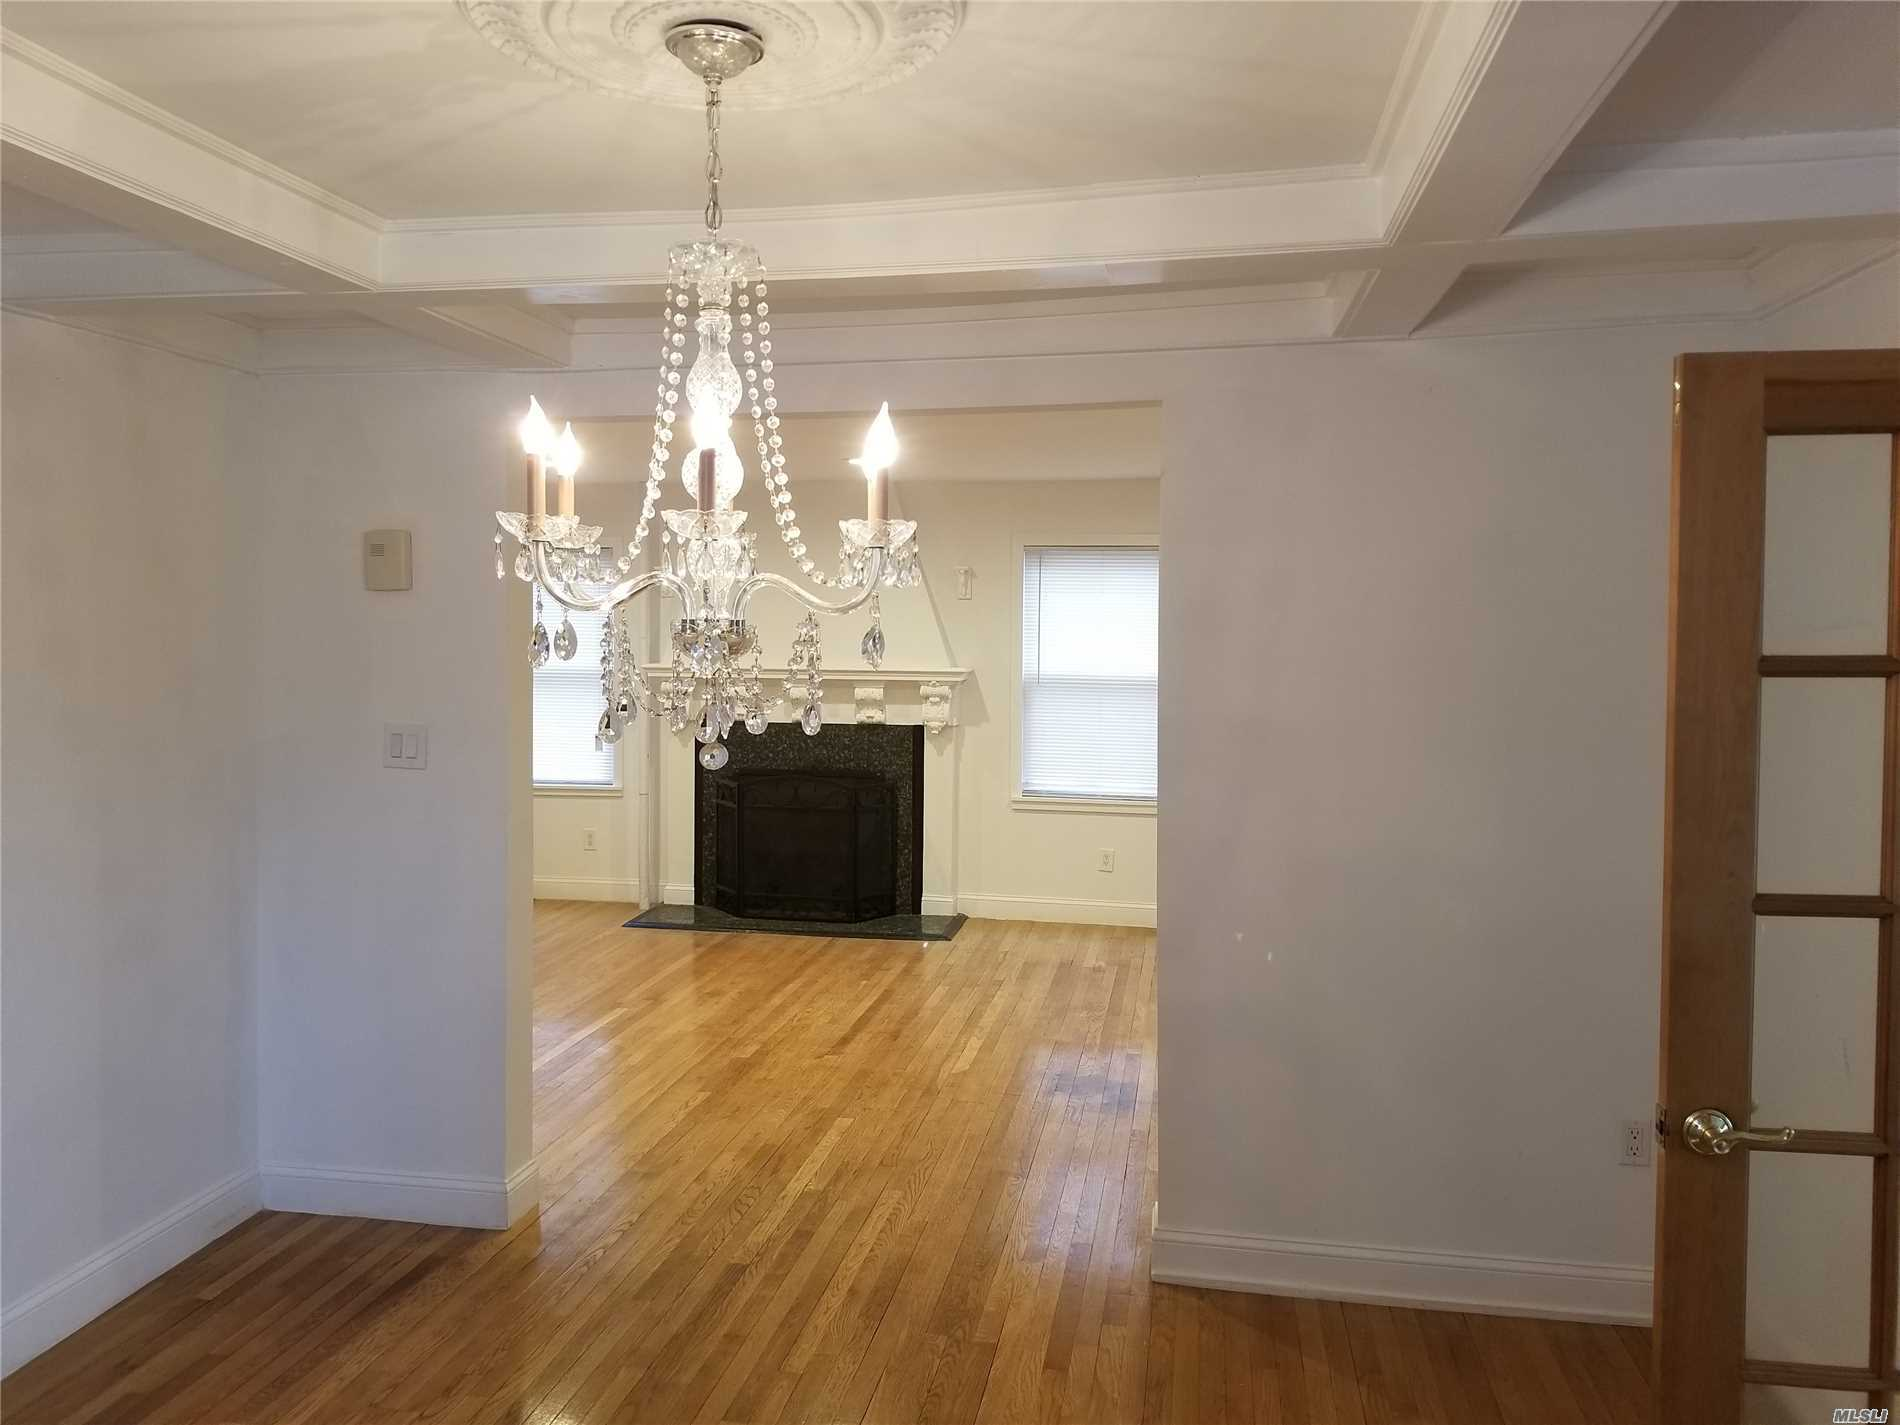 ***Location*** Entire Home For Rent. Walk To Lirr, Bus, Shopping, Entire Home Renovated, Everything ****New**** Hard Wood Floors, Huge Granite Eat In Kitchen With Radiant Heat, 3 Bedrooms, Huge Den With Radiant Heat, Huge Back Yard, Private Driveway, New Deck, New Appliances, Lynbrook Sd20 Award Winning Schools